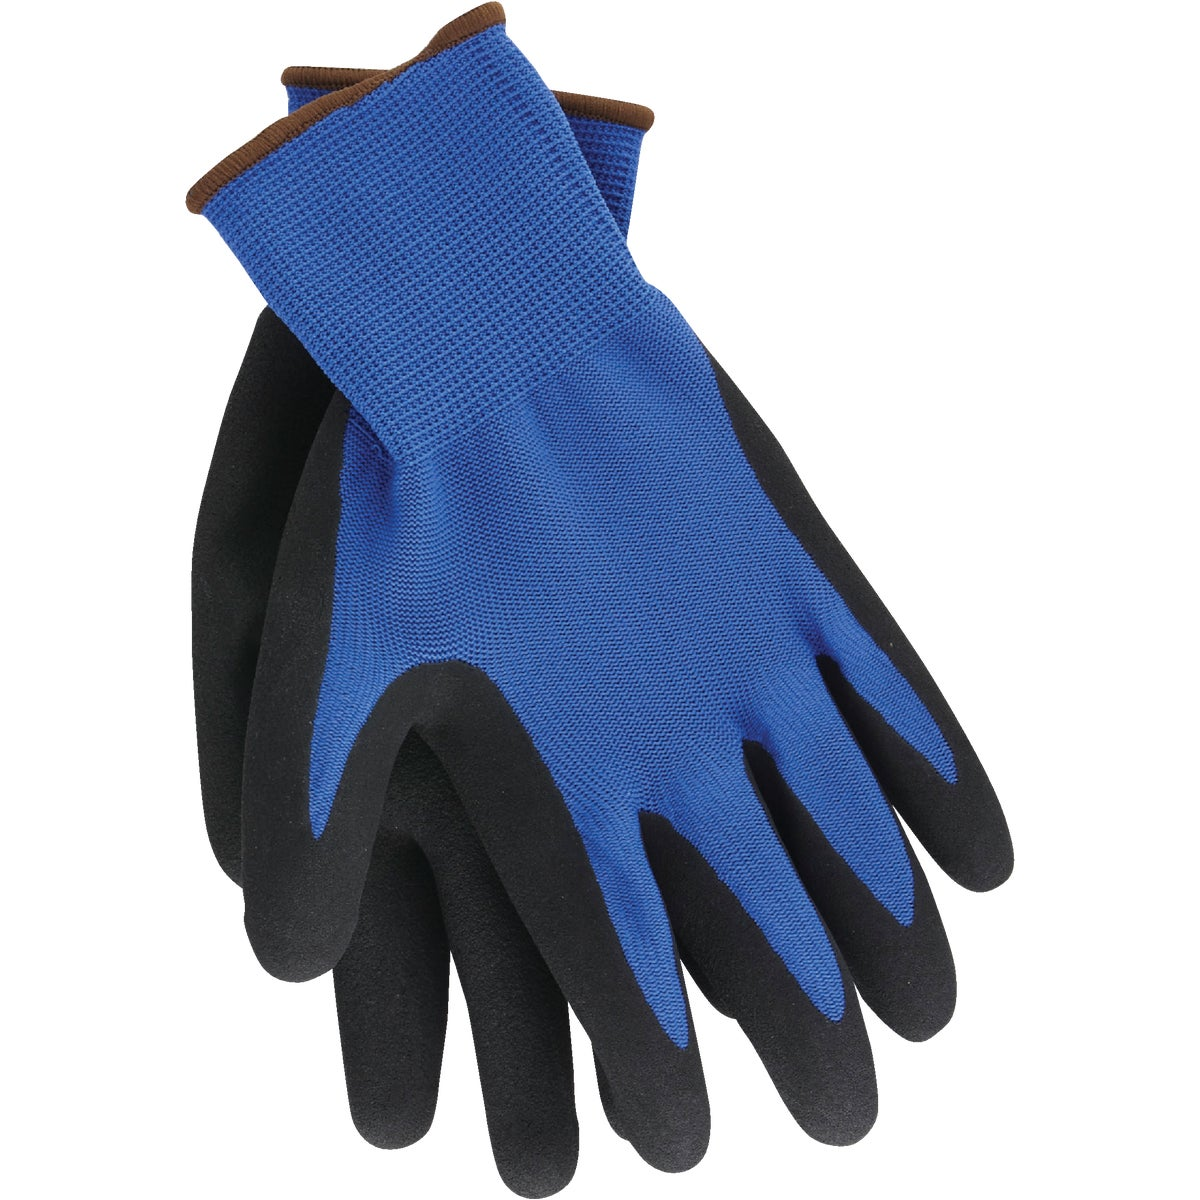 BLUE MEDIUM GRIP GLOVE - 736686 by Do it Best